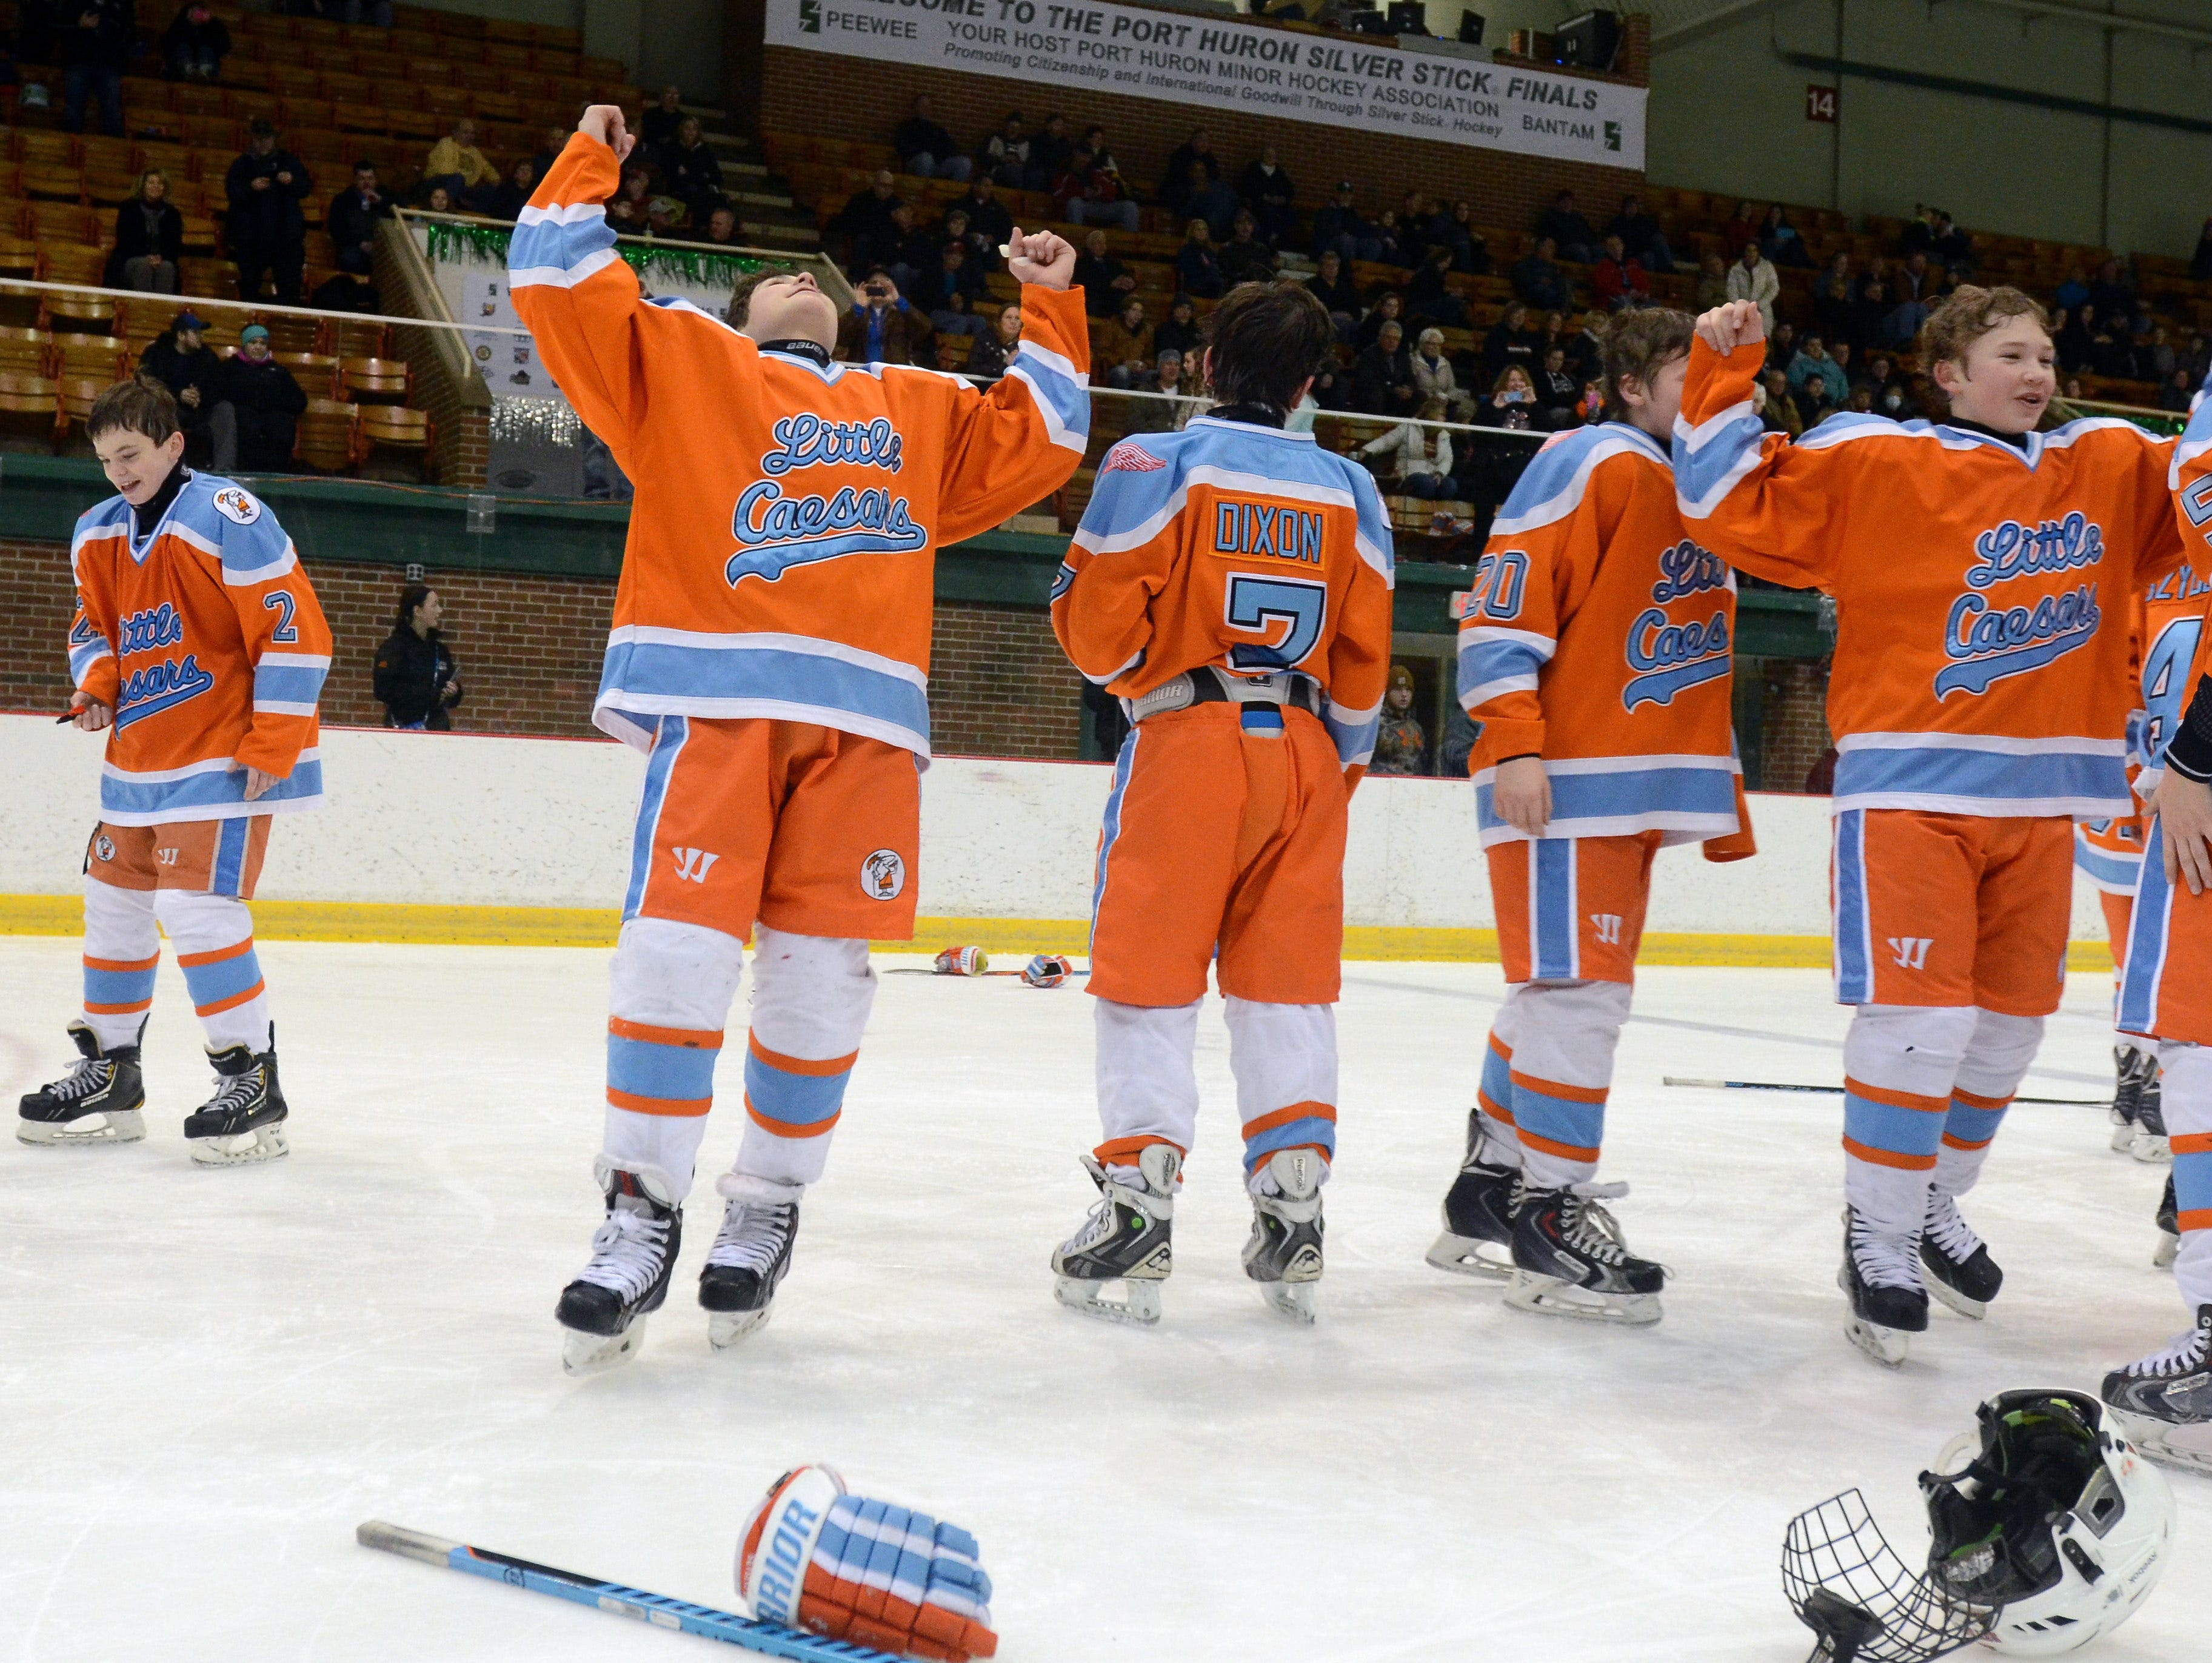 Members of the Detroit Little Caesars celebrate Sunday, Jan 11 after winning the PeeWee AAA Silver Stick Finals championship game.